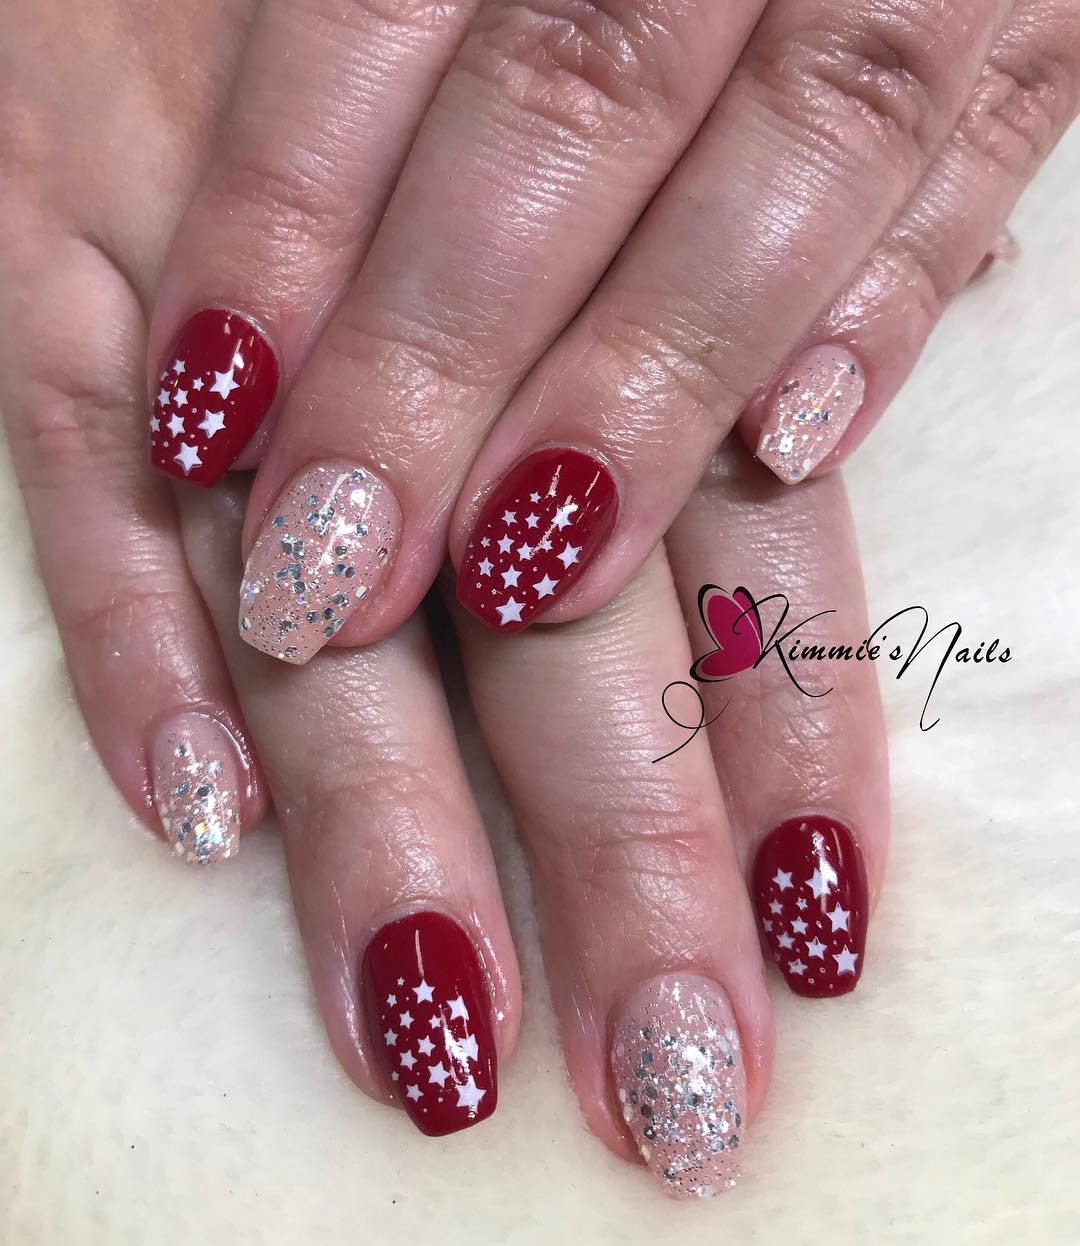 Ultimate Red Glitter Nails With Beautiful Stars